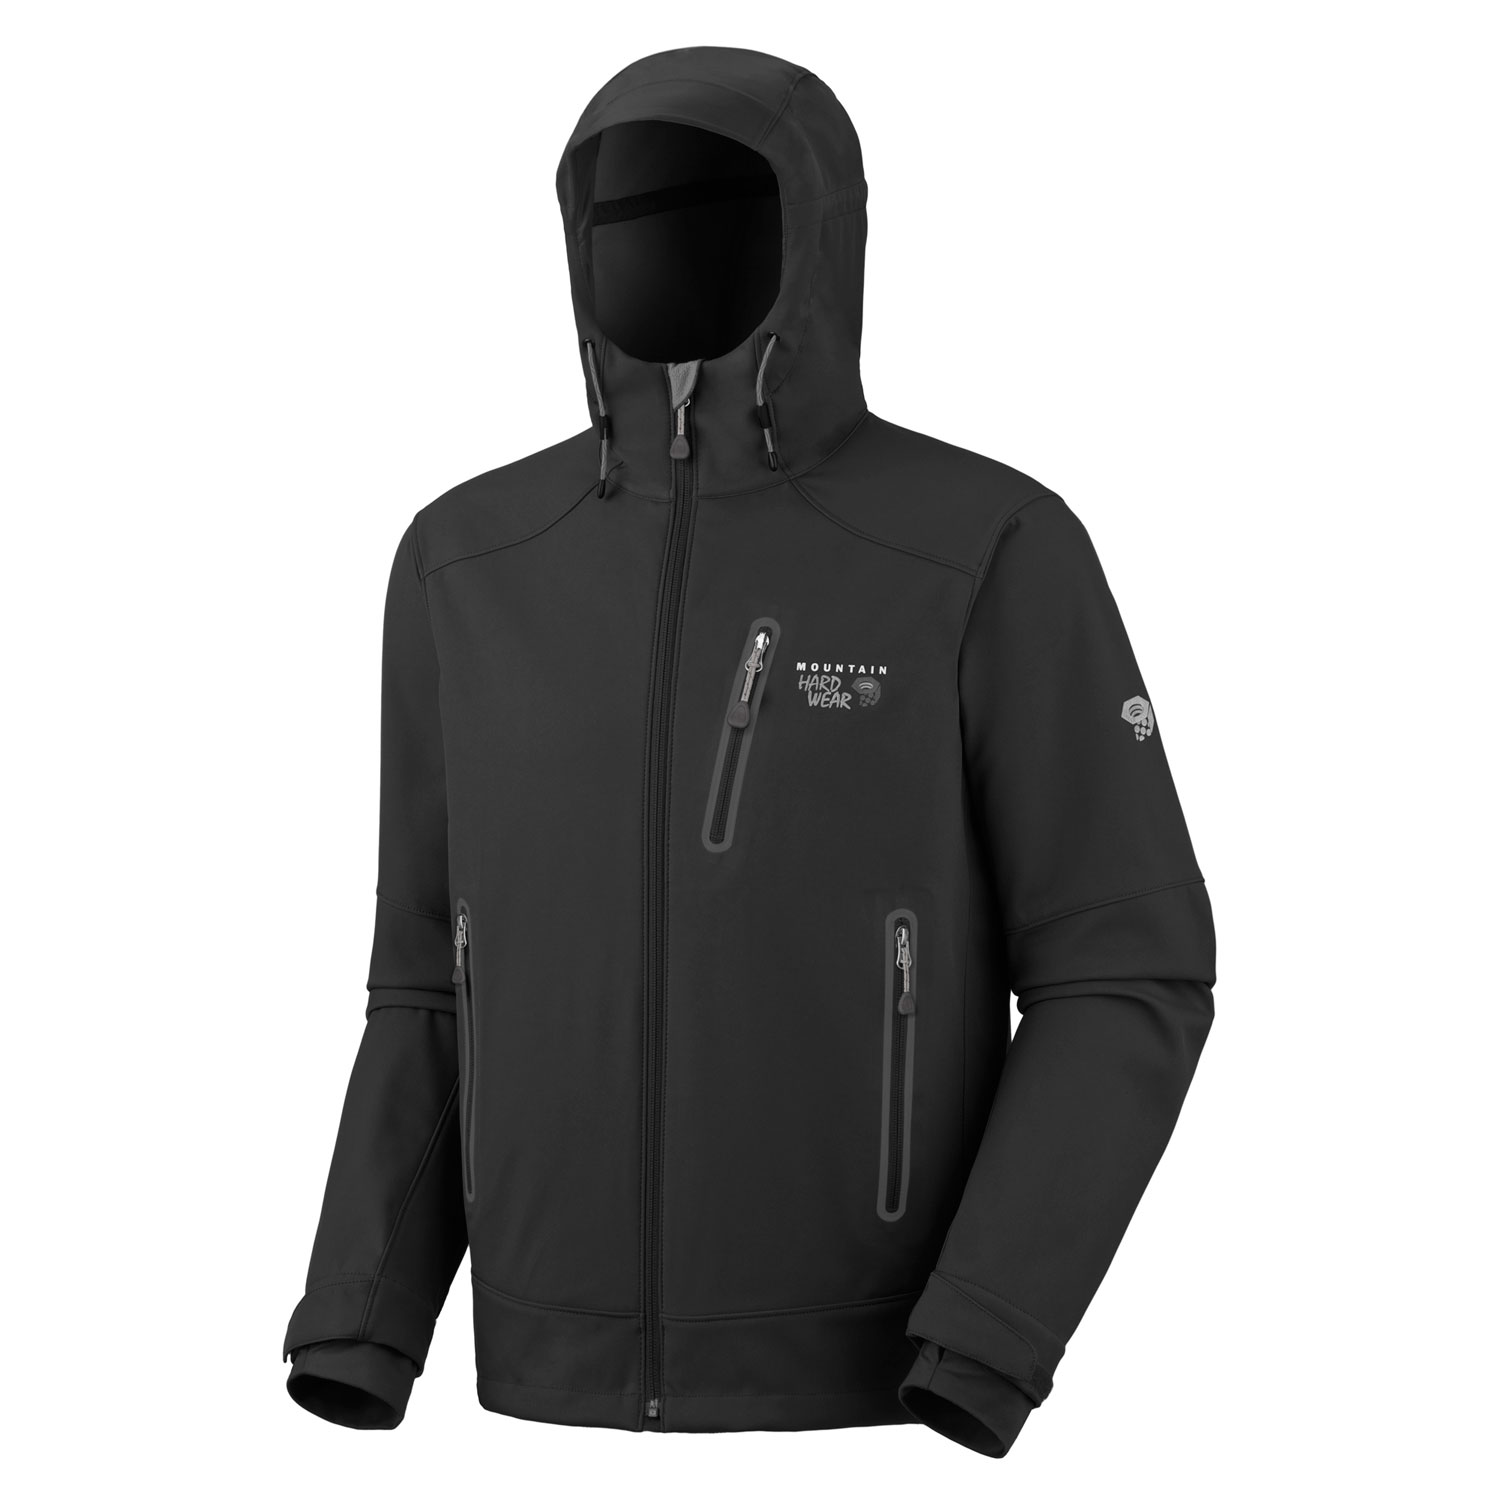 "Key Features of the Mountain Hardwear Mercurial Softshell Jacket: Avg. weight: 1 lb 6 oz; 620g Center back length: 29"" Fabric: Motivity Soft Shell (100% polyester) Attached, helmet-compatible hood with single-handed drawcord for quick fit adjustments Chest-high hand pockets accommodate a harness or pack Internal cuff with adjustable tab Two front handwarmer pockets One-handed hem drawcord seals in warmth - $125.95"